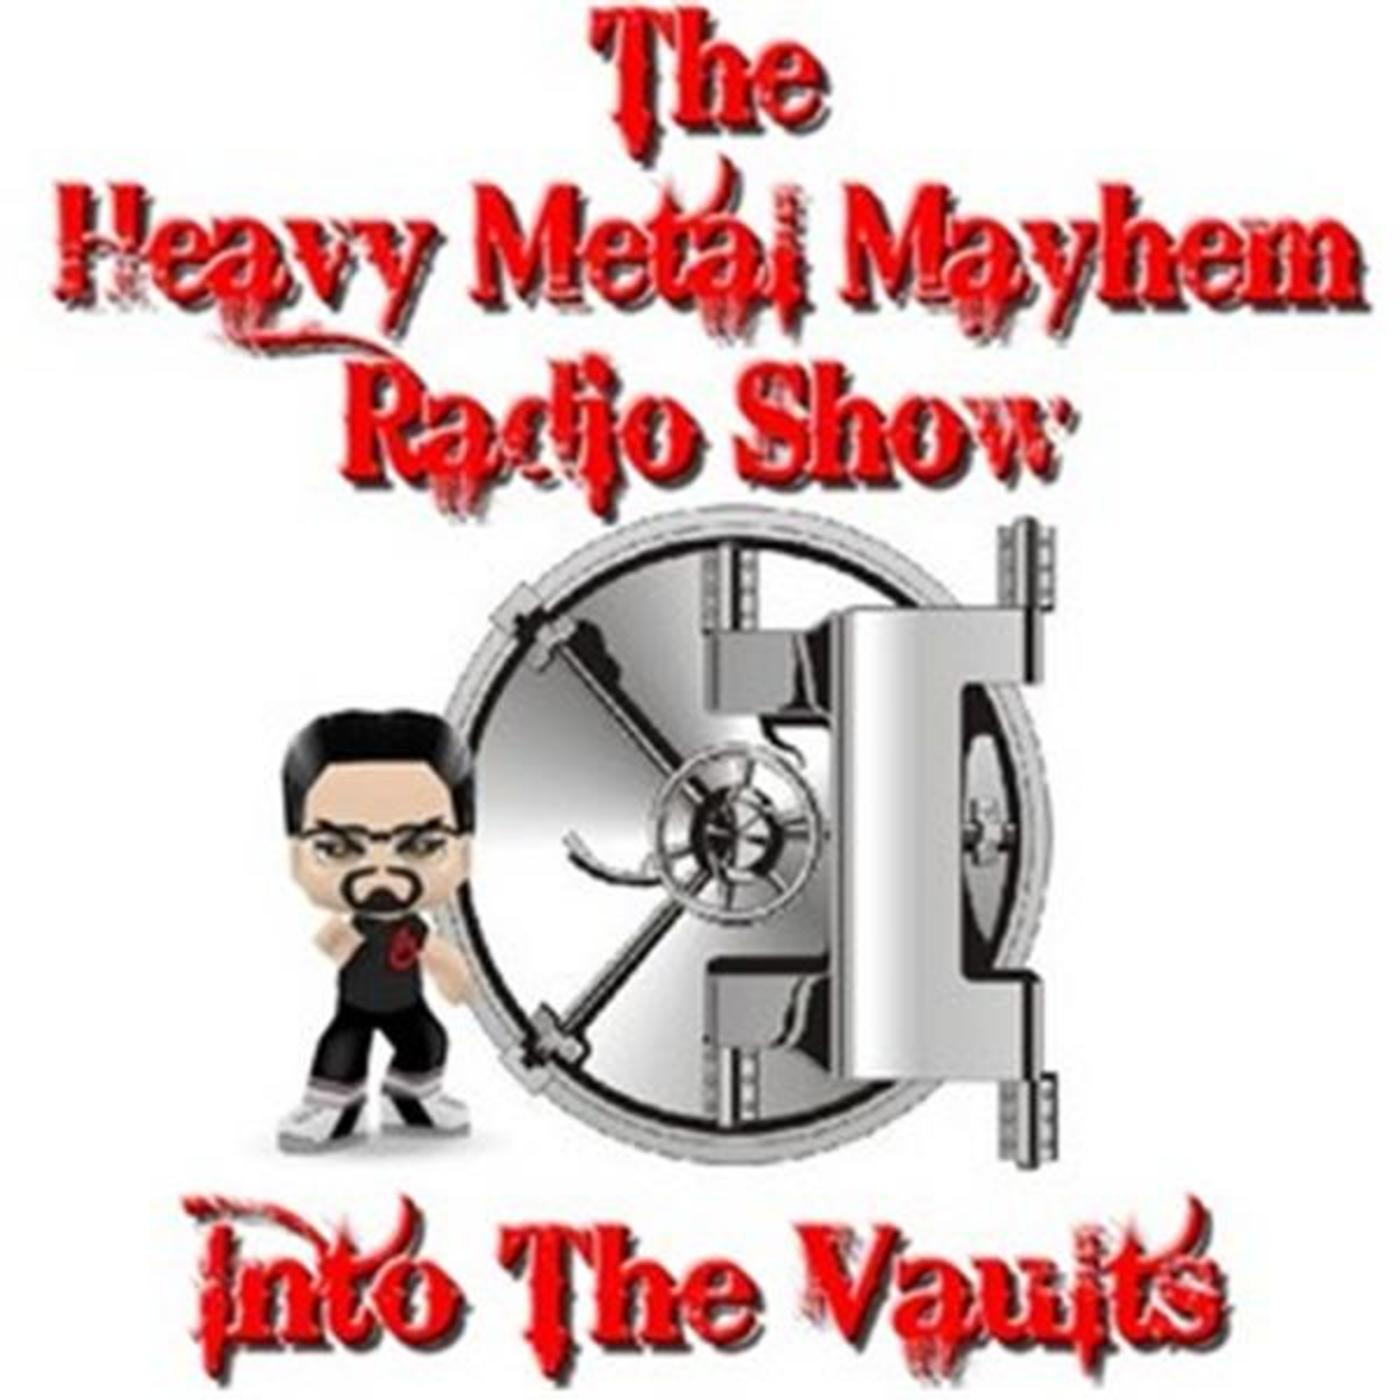 Into The Vaults With Heavy Metal Mayhem